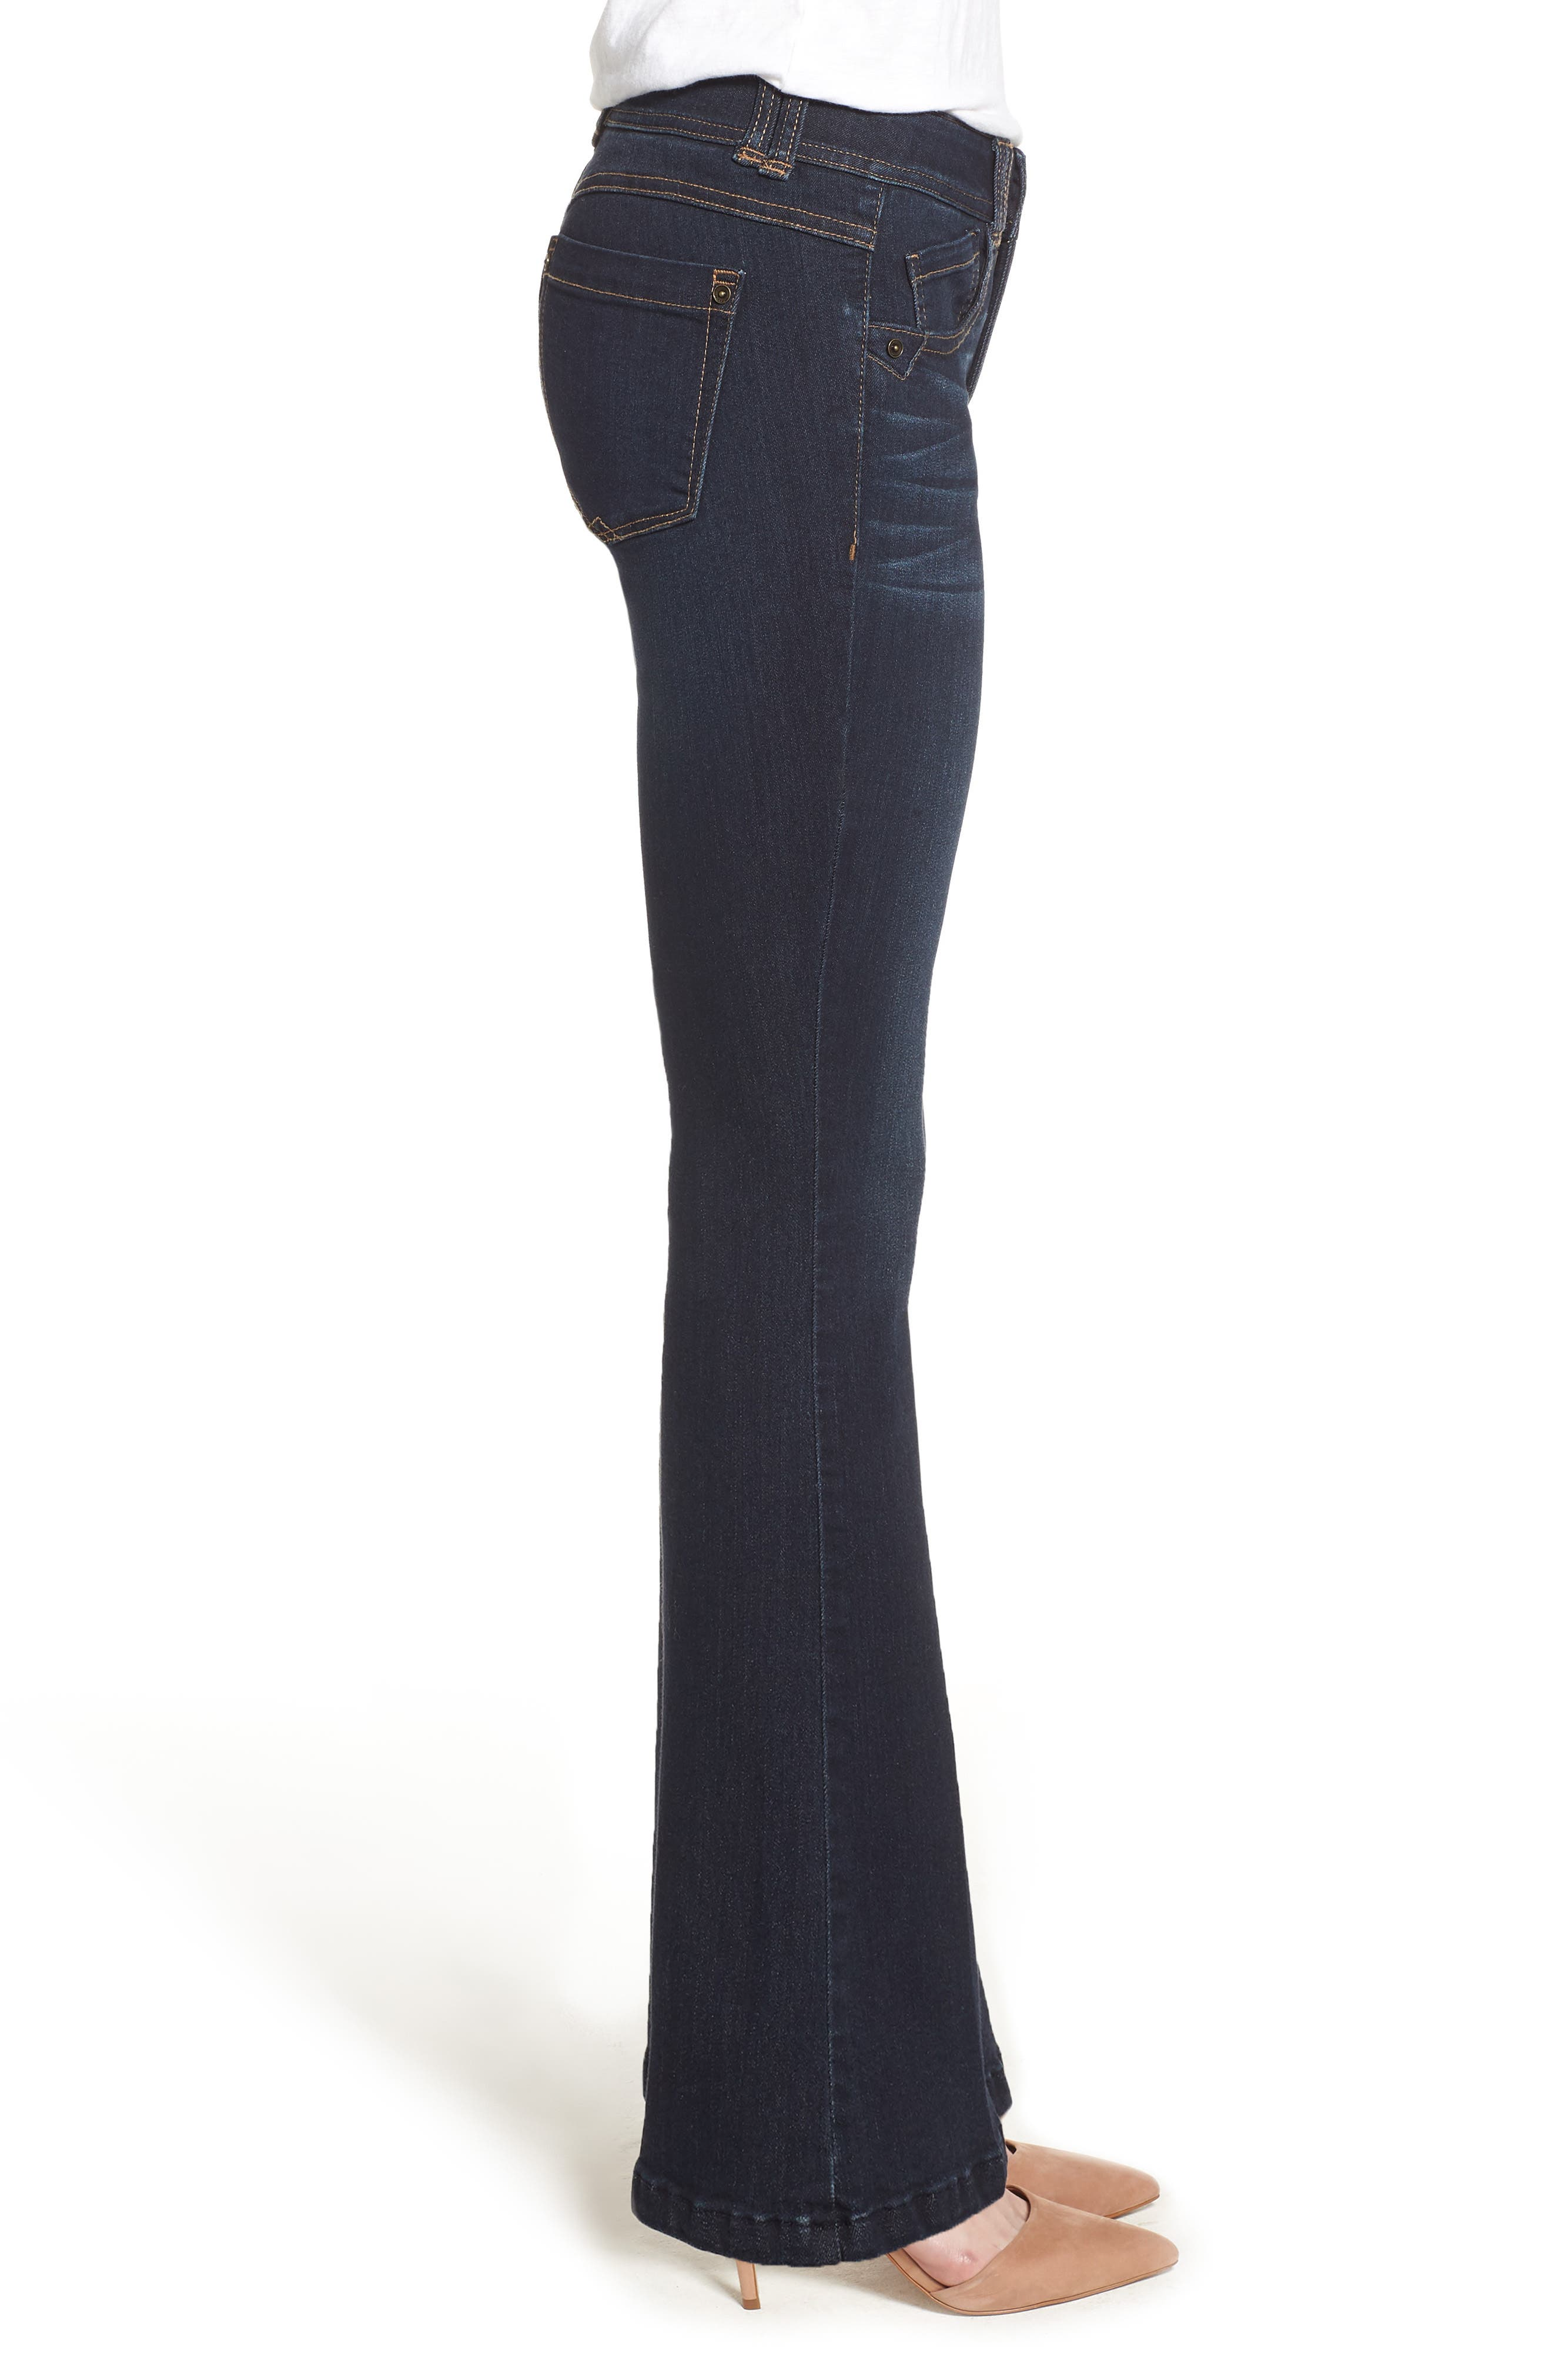 Ab-solution Itty Bitty Bootcut Jeans,                             Alternate thumbnail 3, color,                             IN-INDIGO